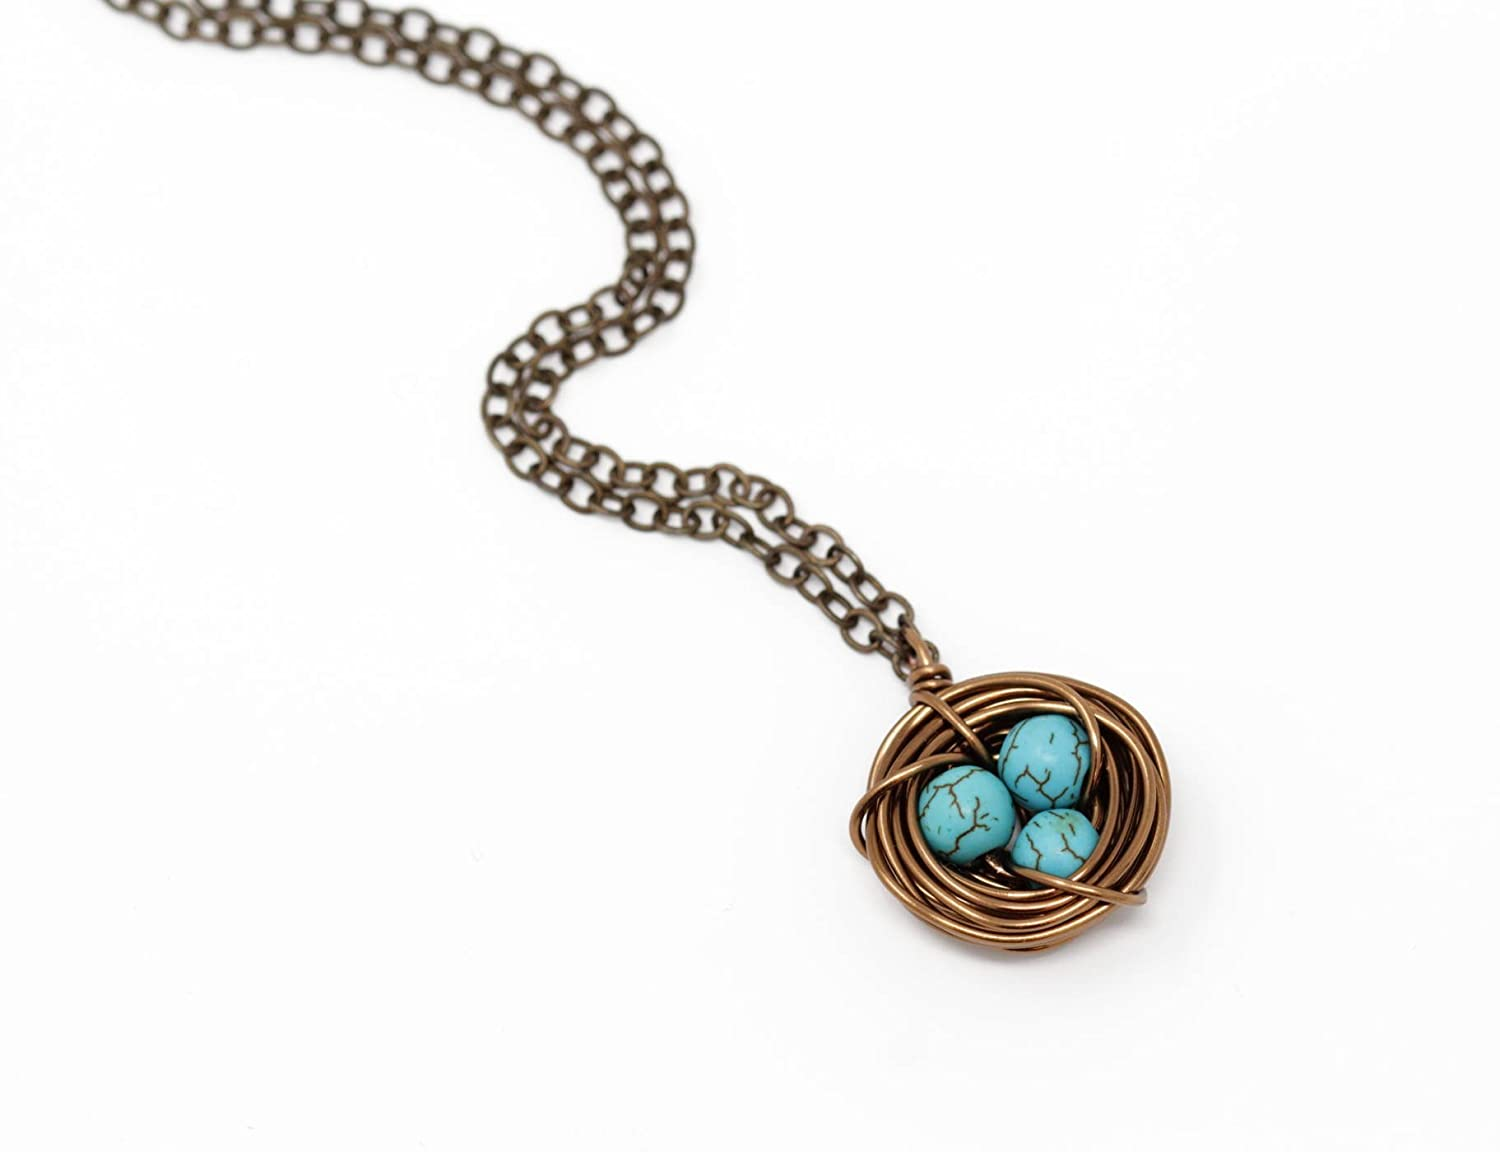 Nest Necklace For Mom With Dark Turquoise Beads - Perfect For Mothers Day